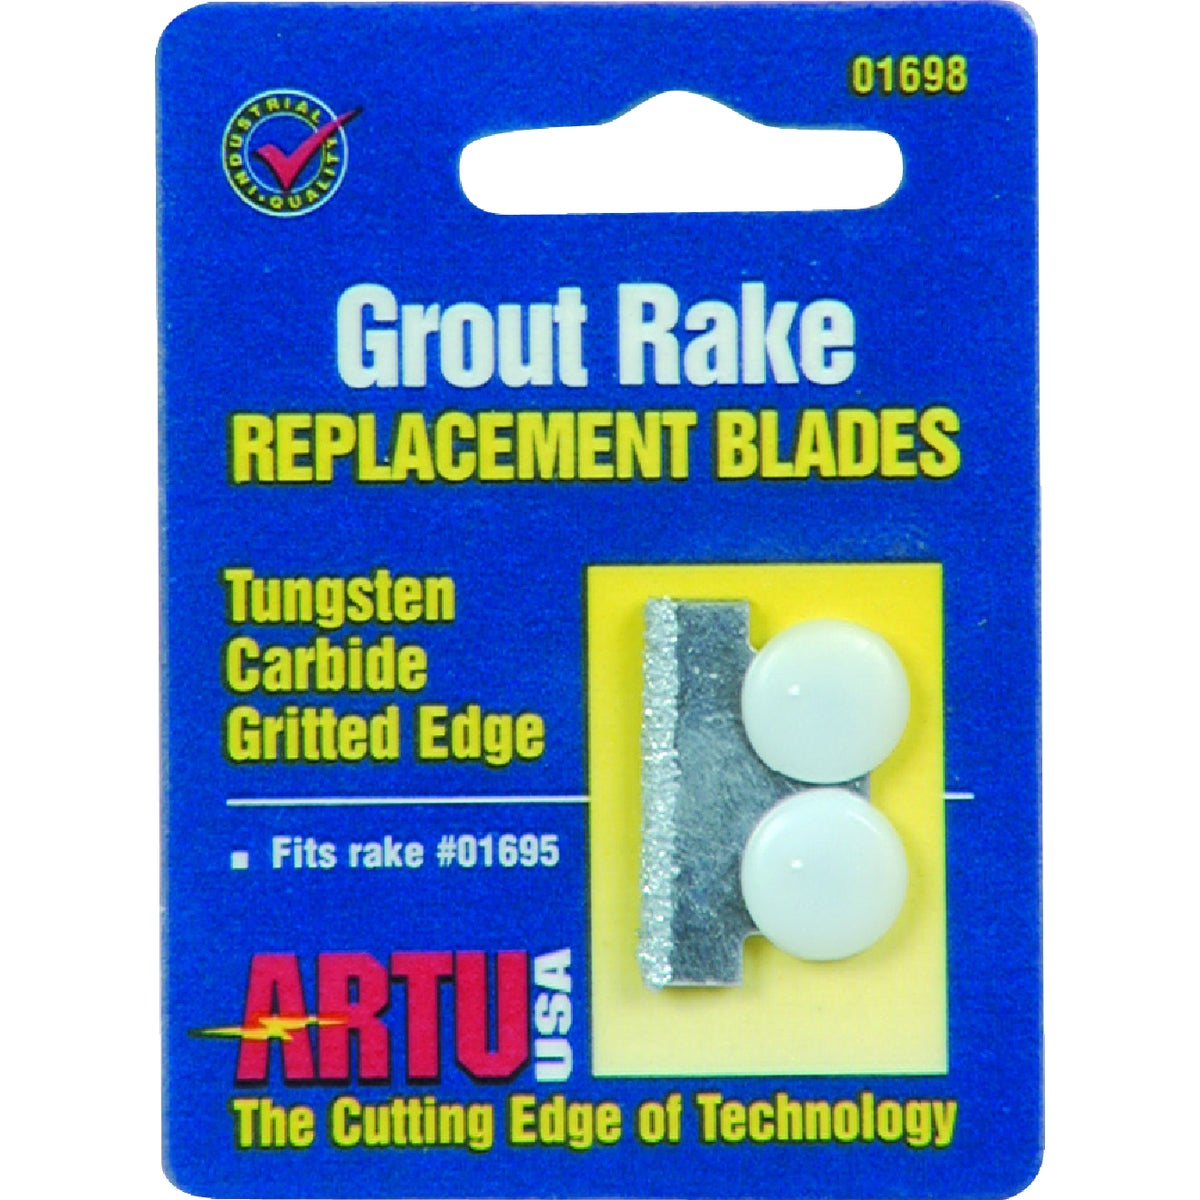 GROUT RAKE REPLCMT BLADE - 01698 by Artu Usa Inc